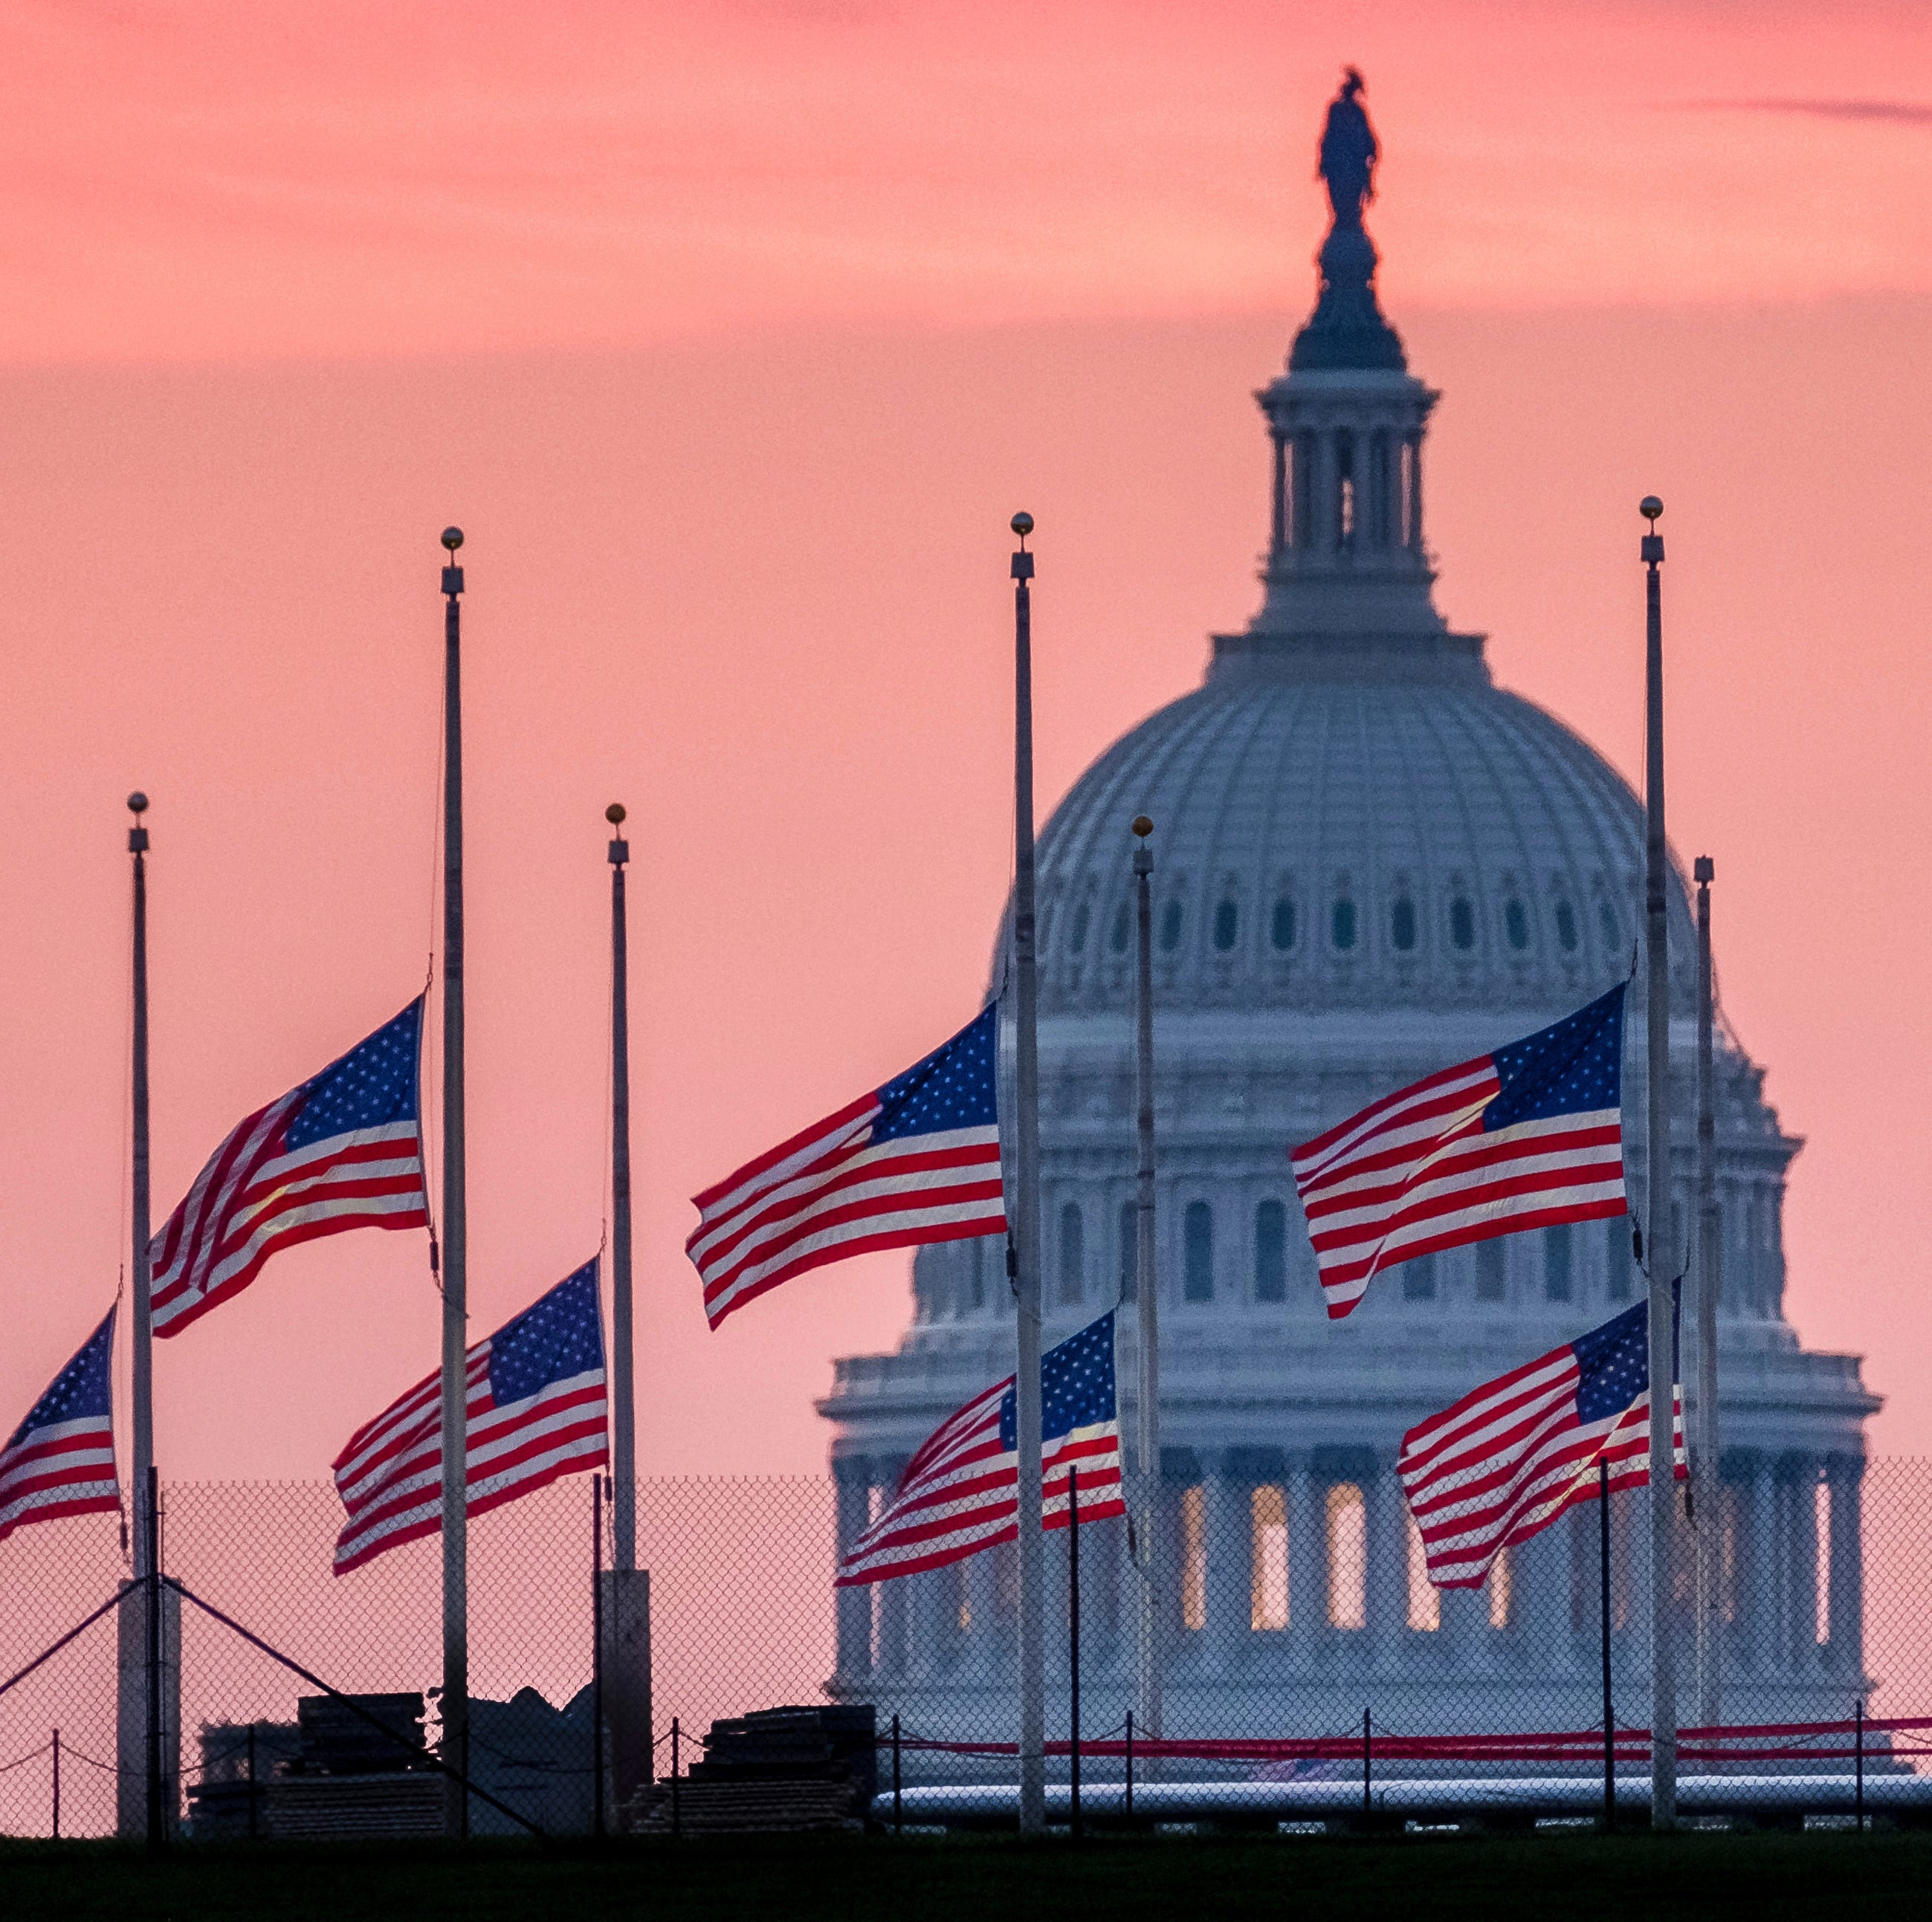 To honor McCain's memory, fight the plague of distrust   Opinion